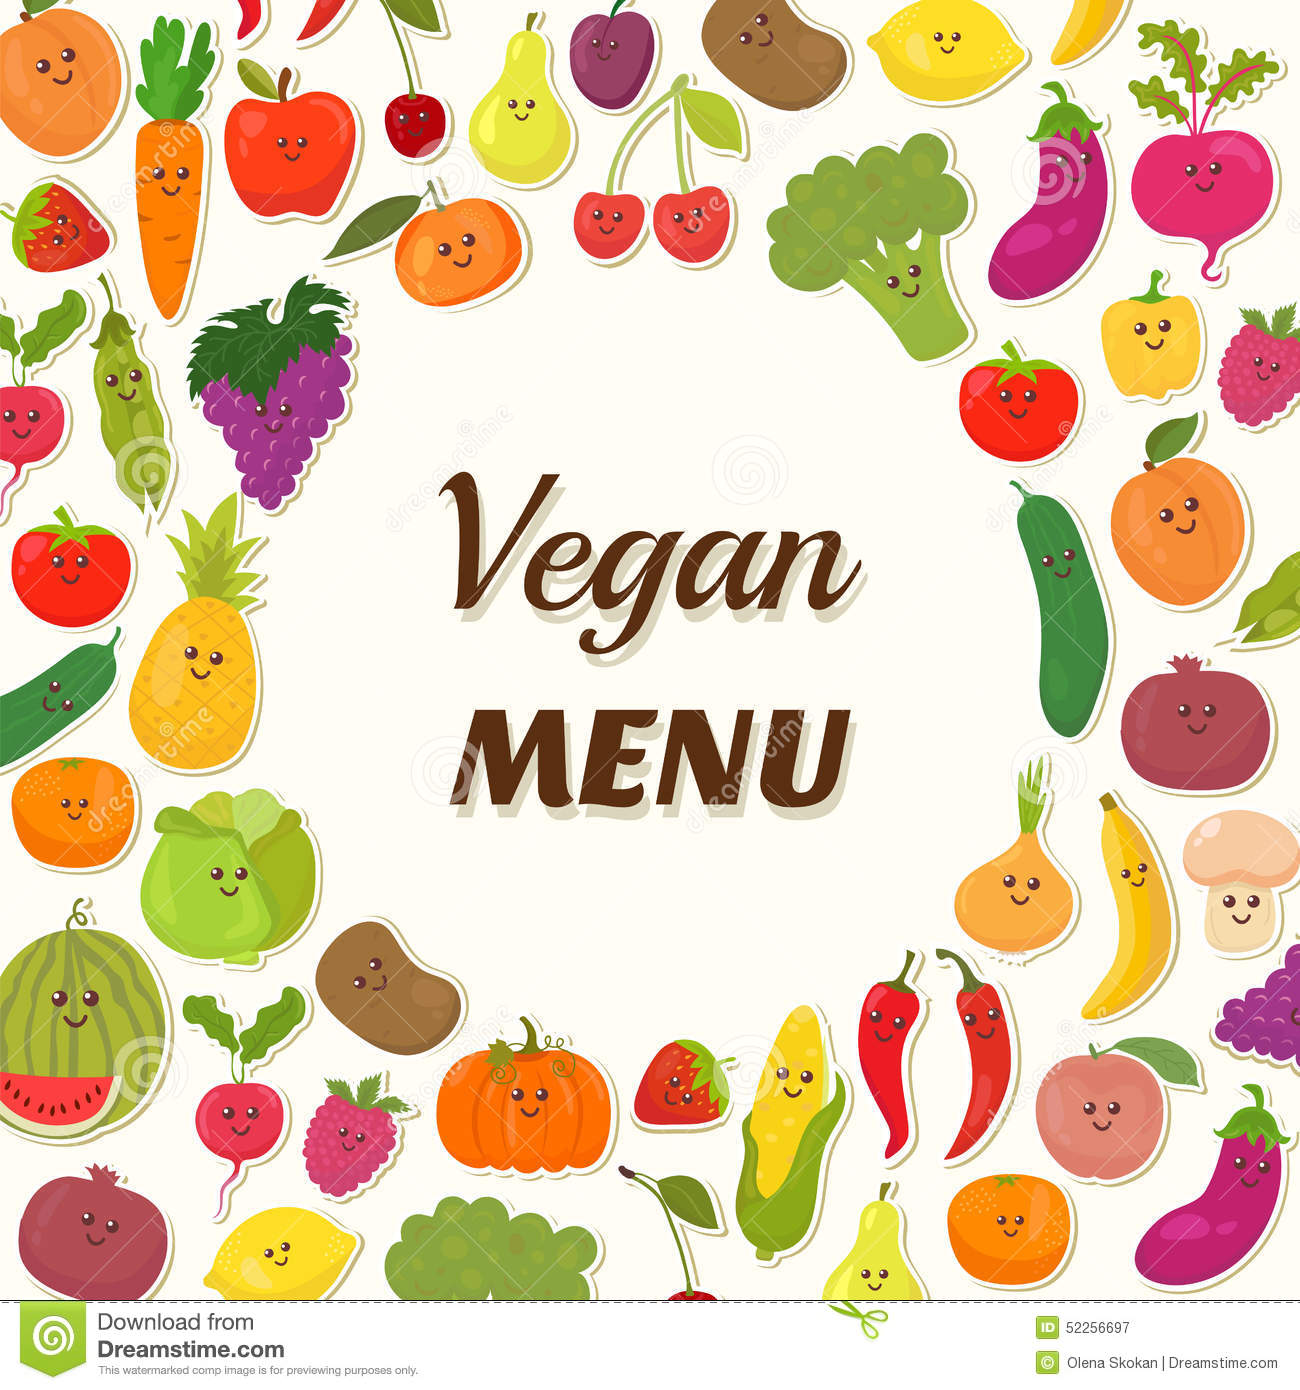 Vegan Menu Background Vegetarian Card Design Stock Vector